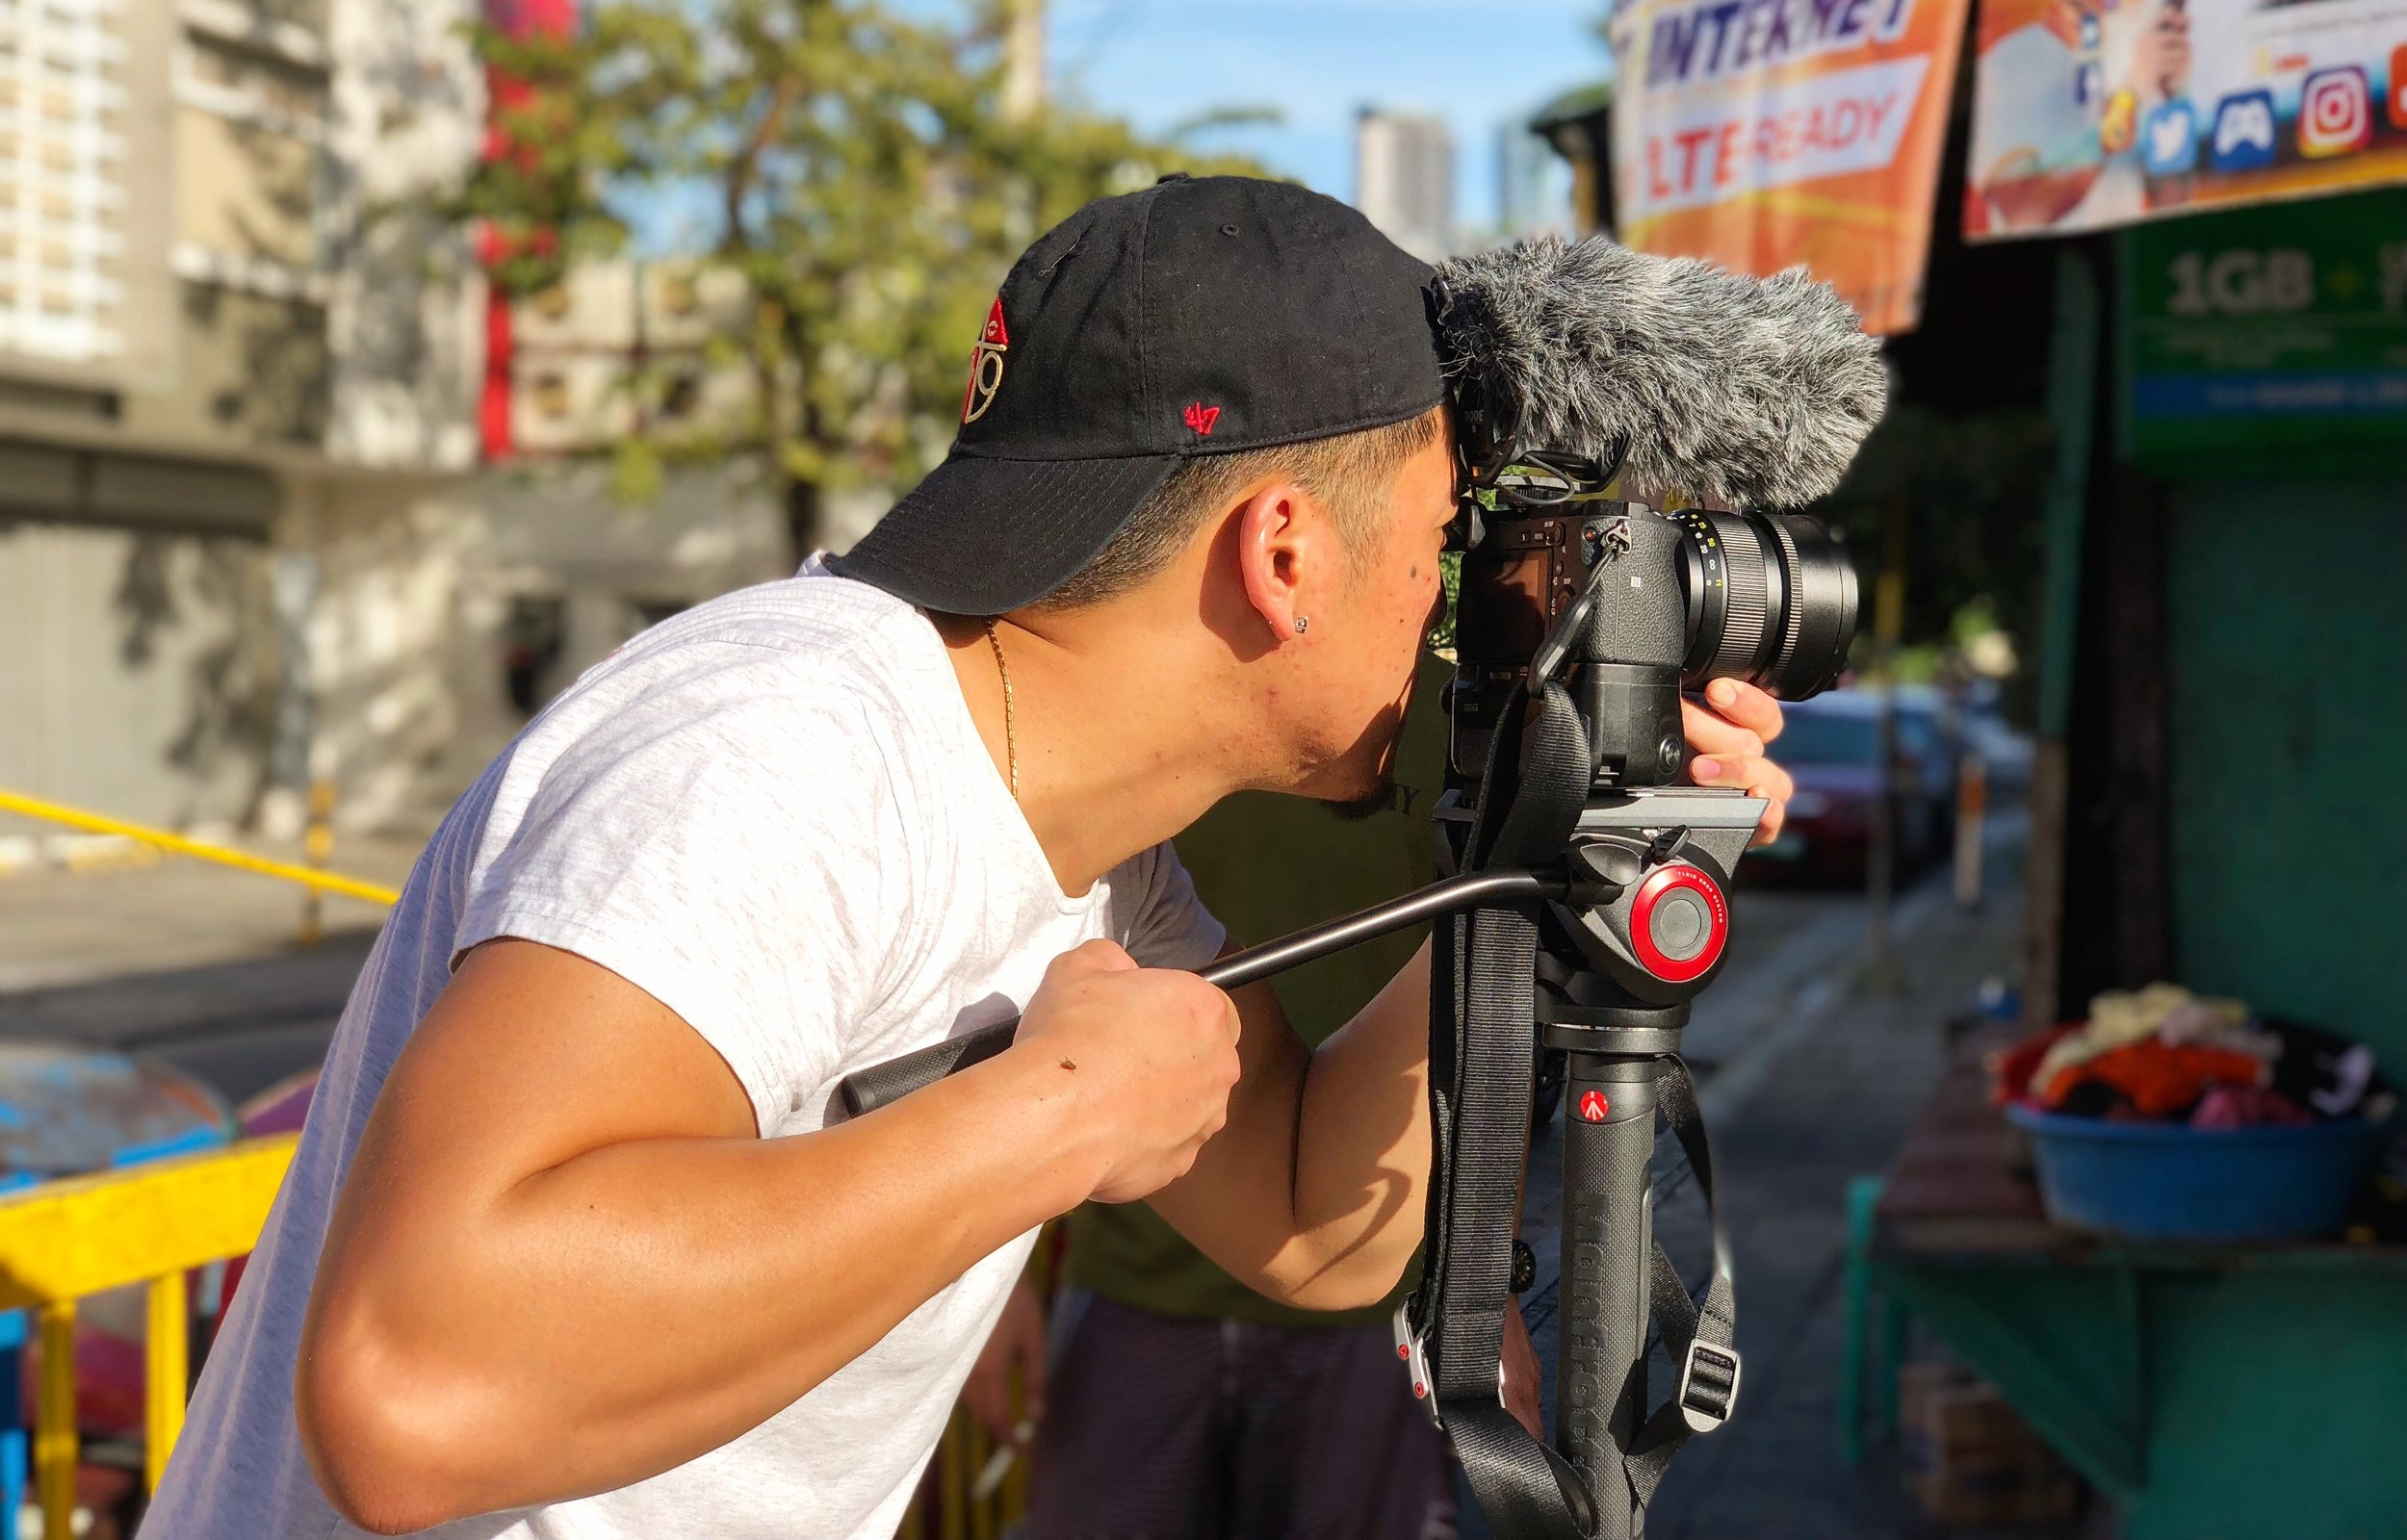 Filming in the streets of Makati, Philippines for Infanta Lambanog